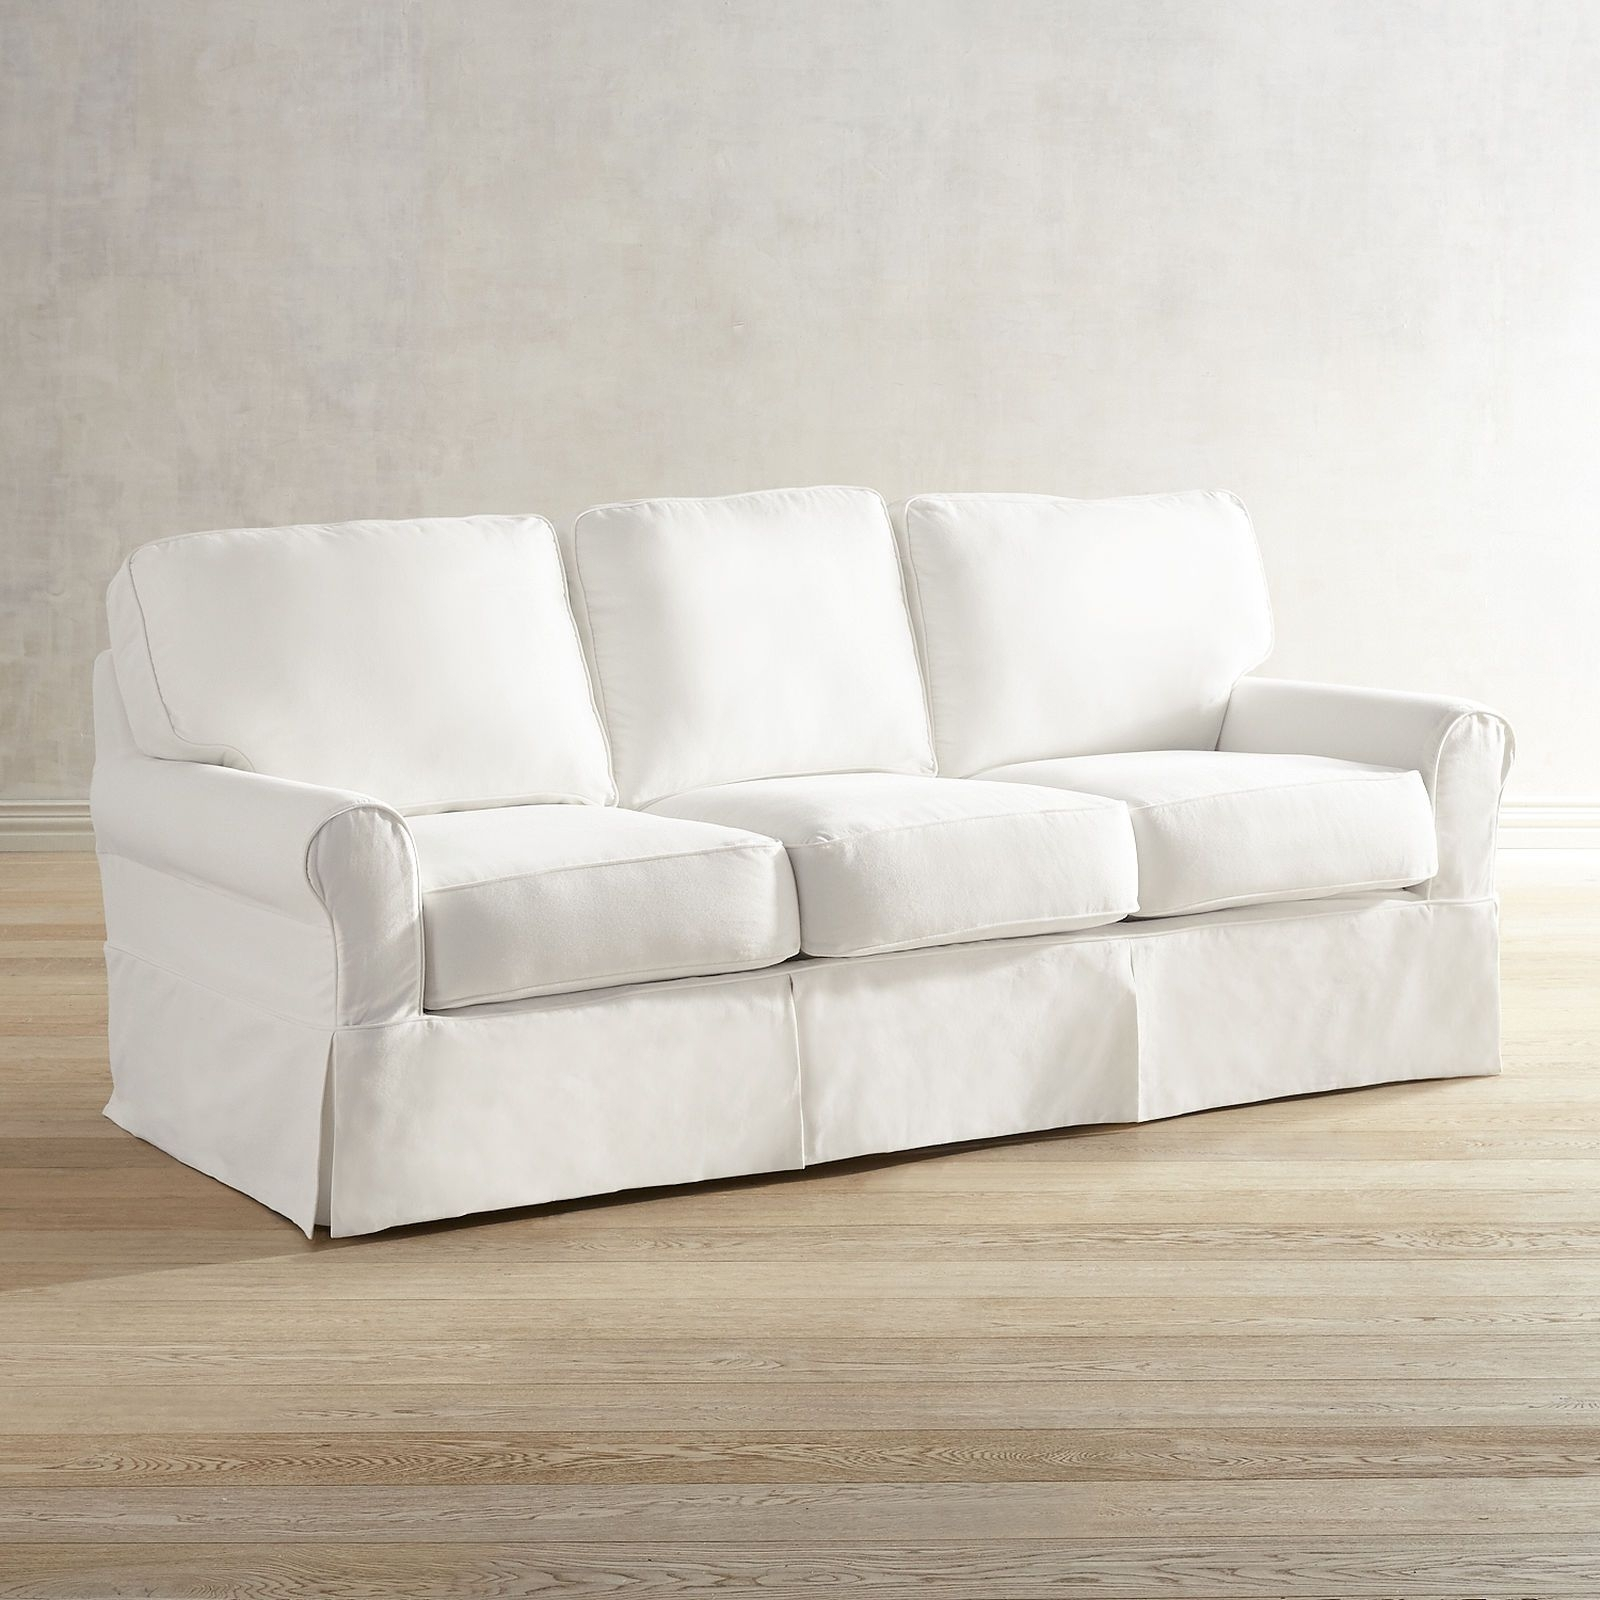 Lia Pierformance™ White Slipcovered Sofa | F U R N I T U R E inside London Optical Reversible Sofa Chaise Sectionals (Image 12 of 30)